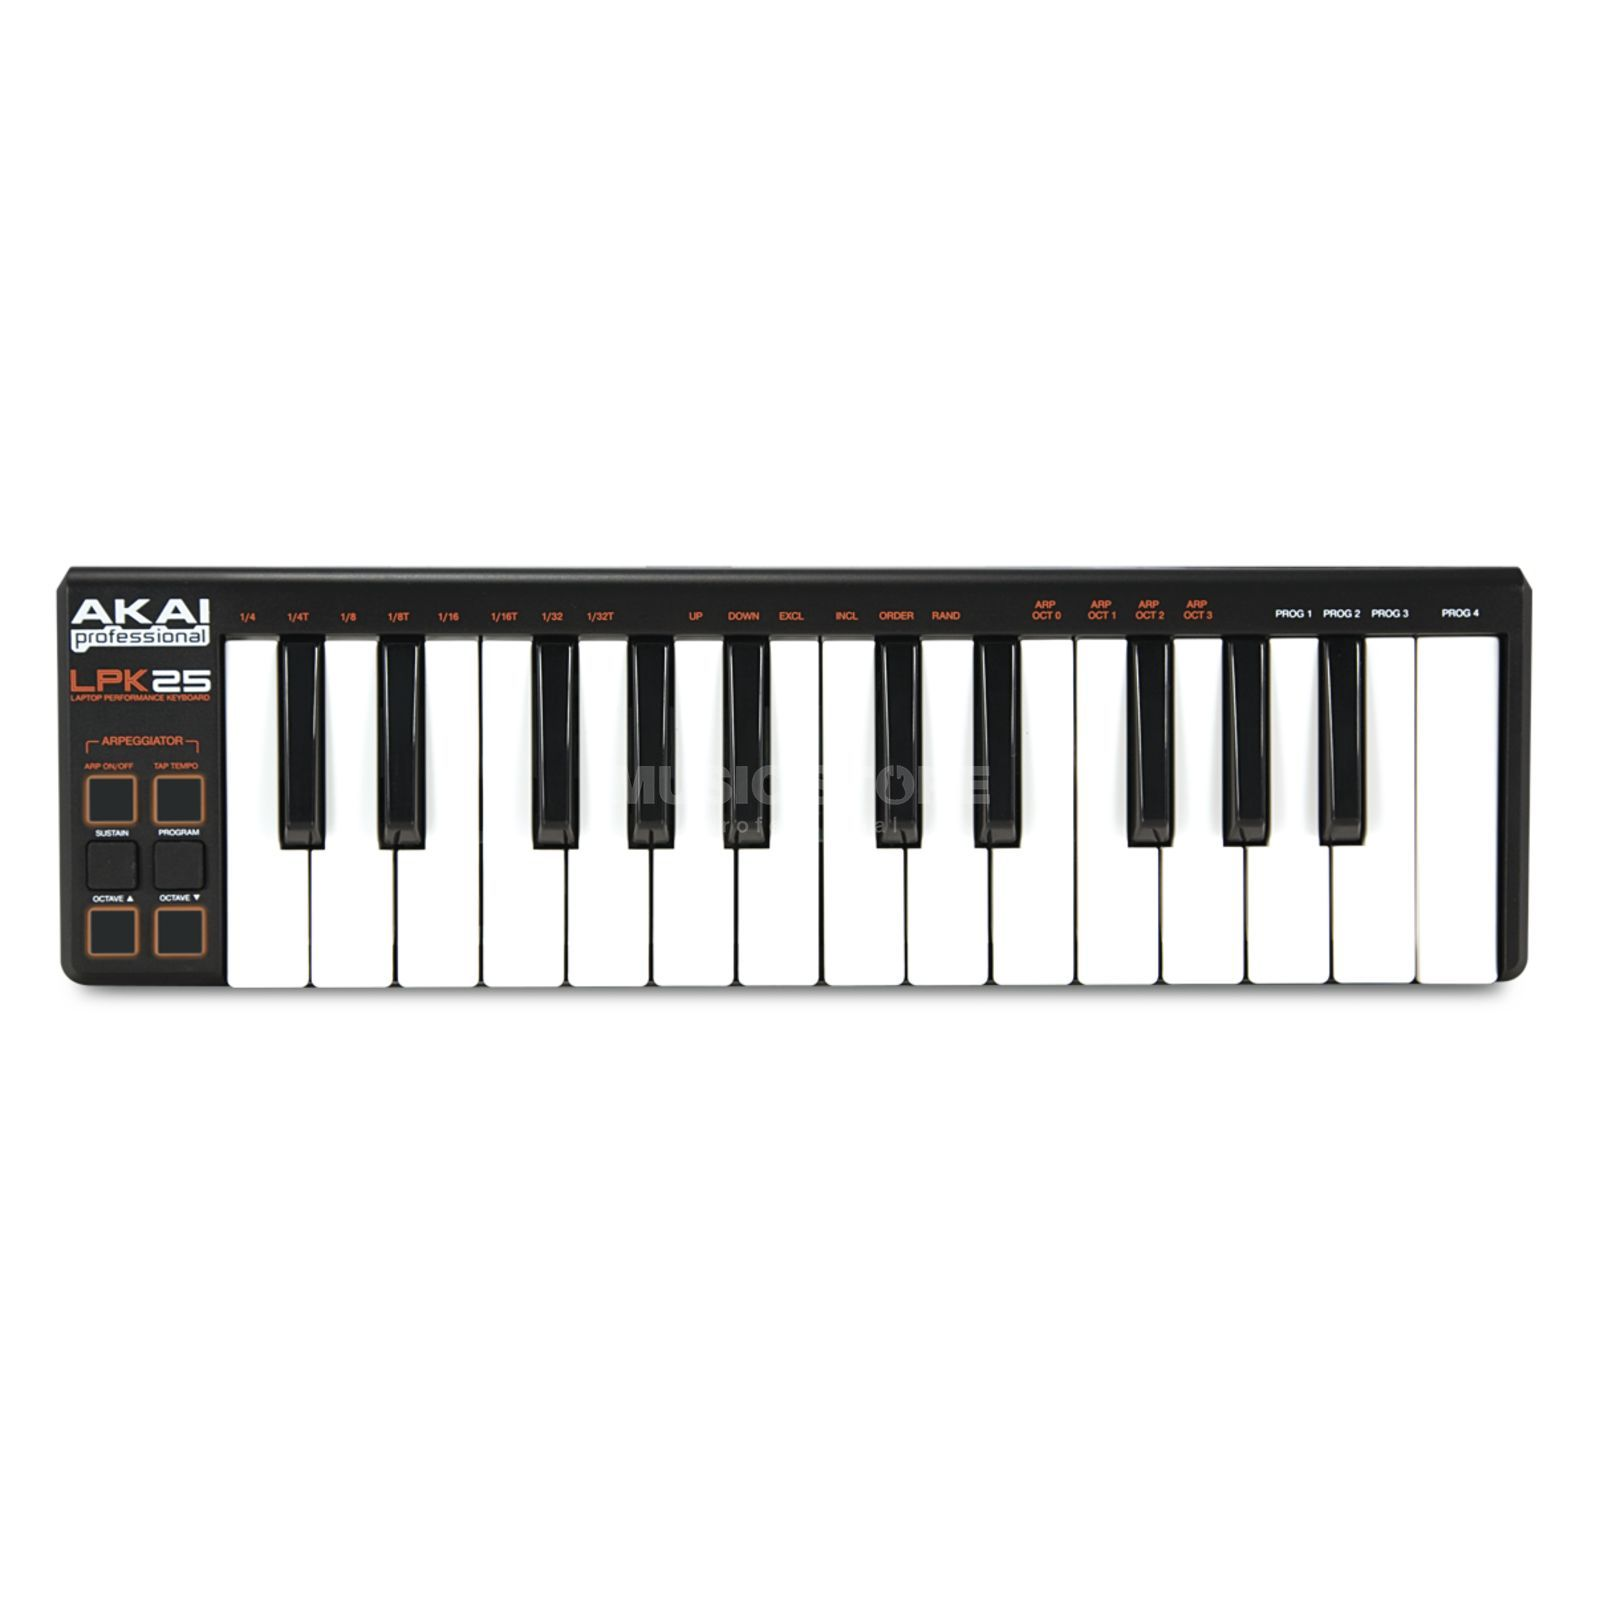 Akai LPK 25 Mini Keyboard Product Image